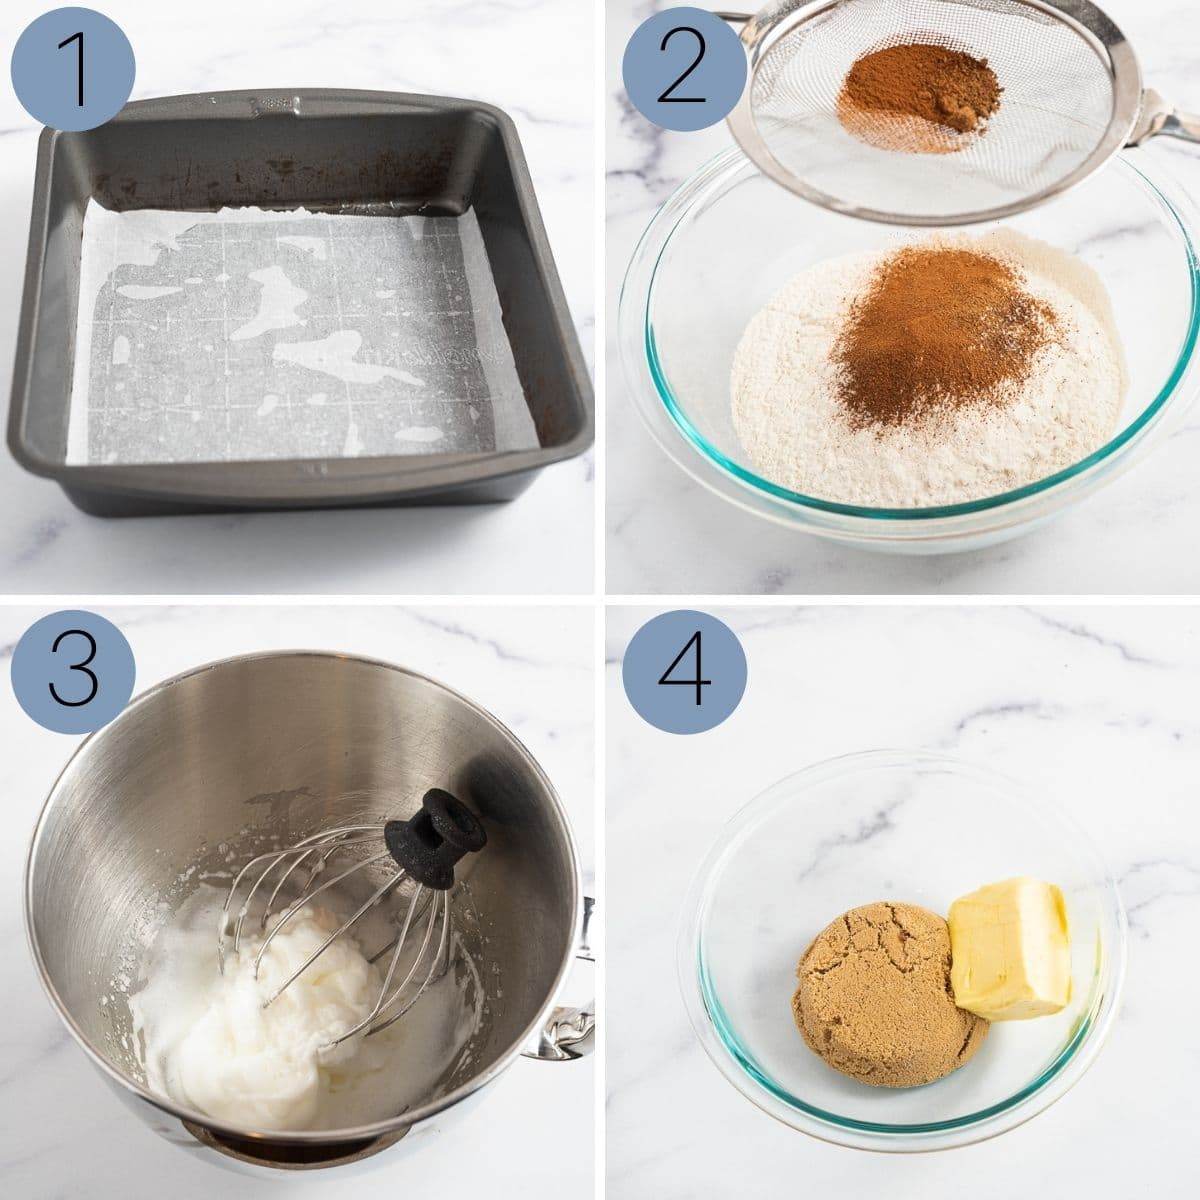 steps 1 to 4 of making the spice cake recipe